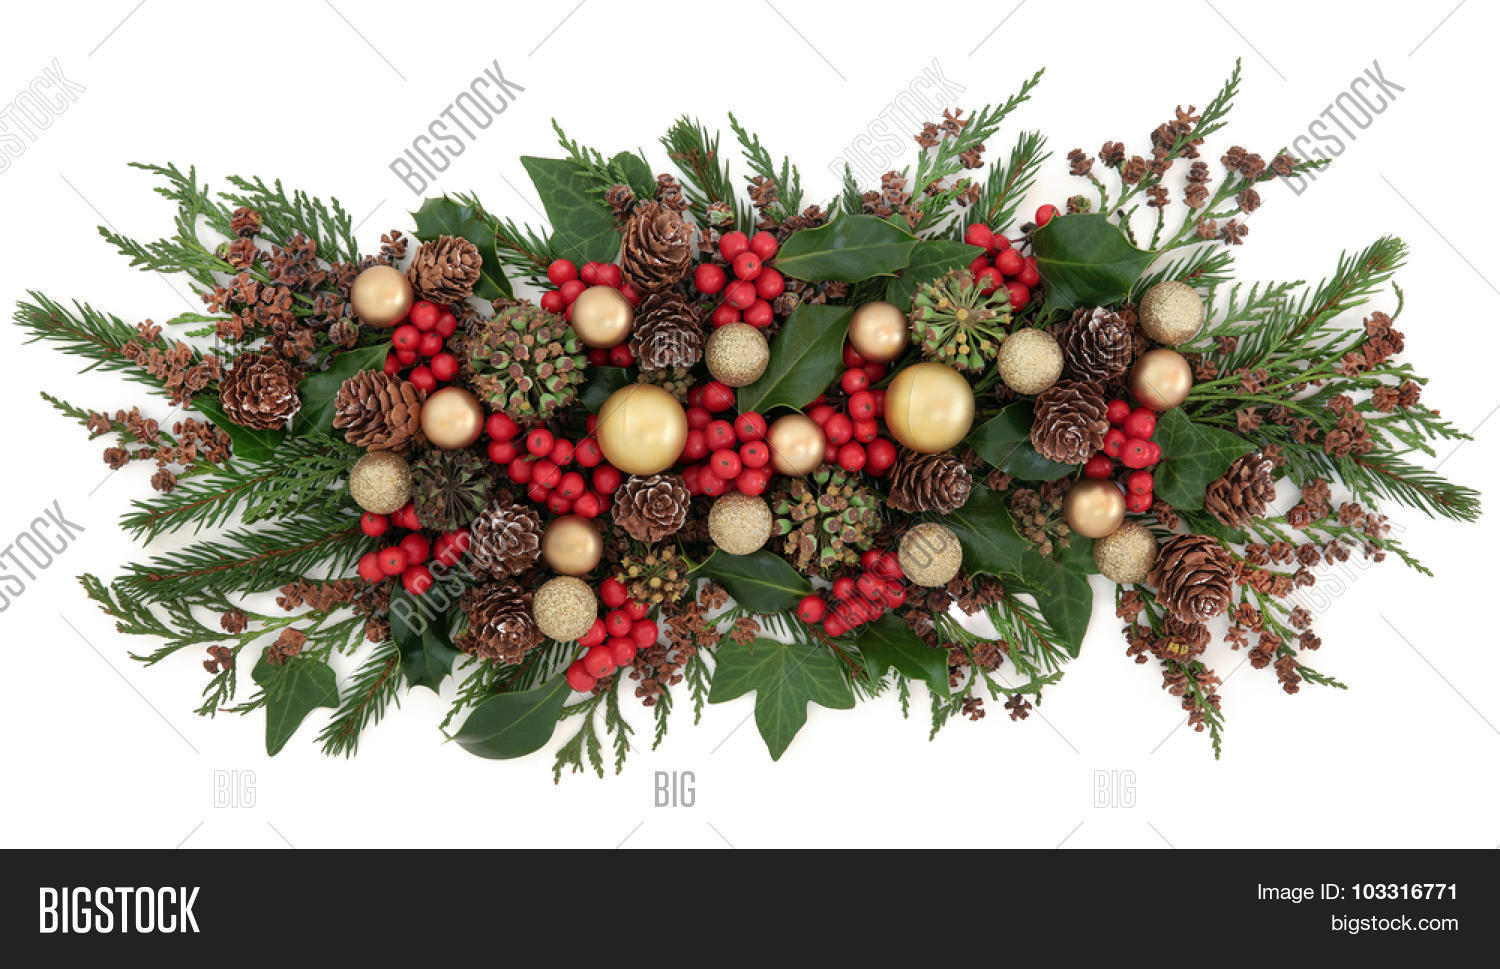 Why is holly a traditional christmas decoration - Christmas Gold Bauble Decorations Holly Mistletoe Ivy Pine Cones And Traditional Greenery